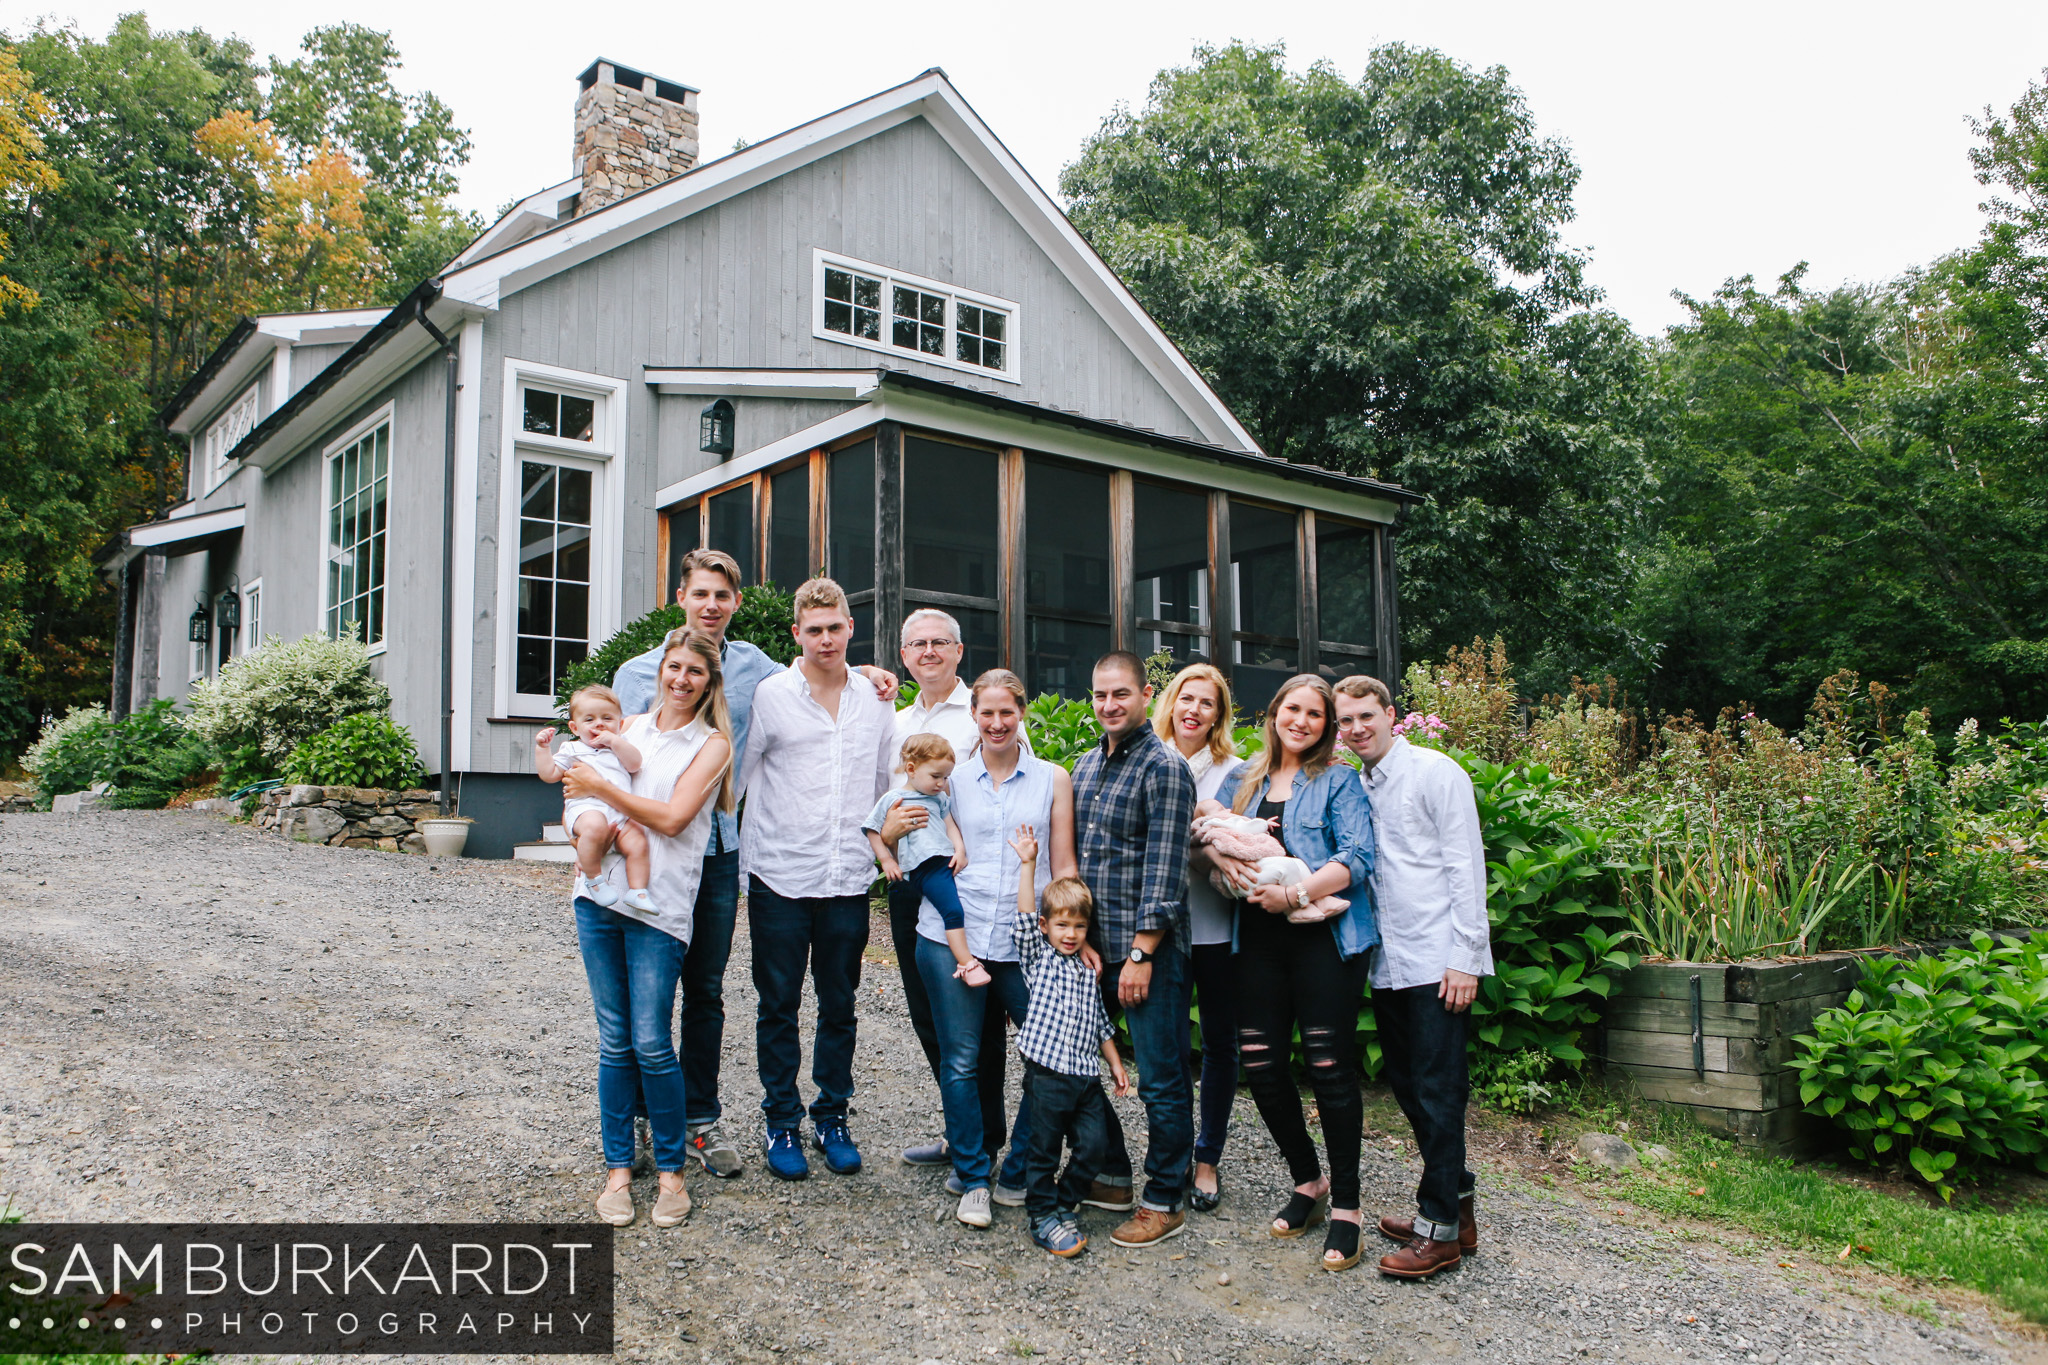 sburkardt_family_photos_fall_portraits_connecticut_washington_019.jpg